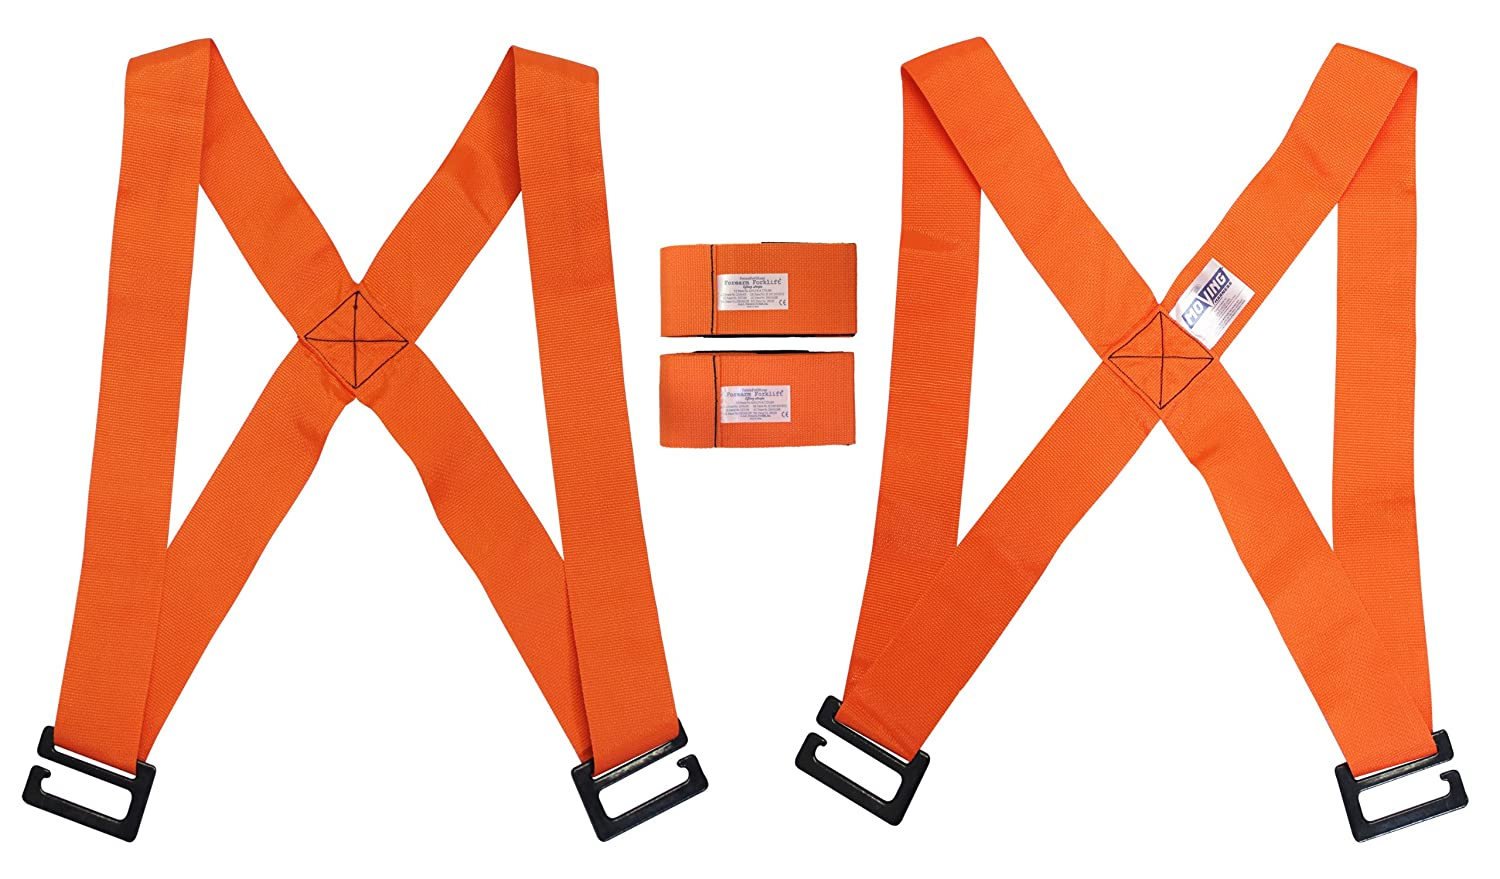 Forearm Forklift FFMCVP Harness 2-Person Shoulder Lifting and Moving System for Furniture, Appliances, Mattresses or Heavy Objects up to up to 800 Pounds, Orange